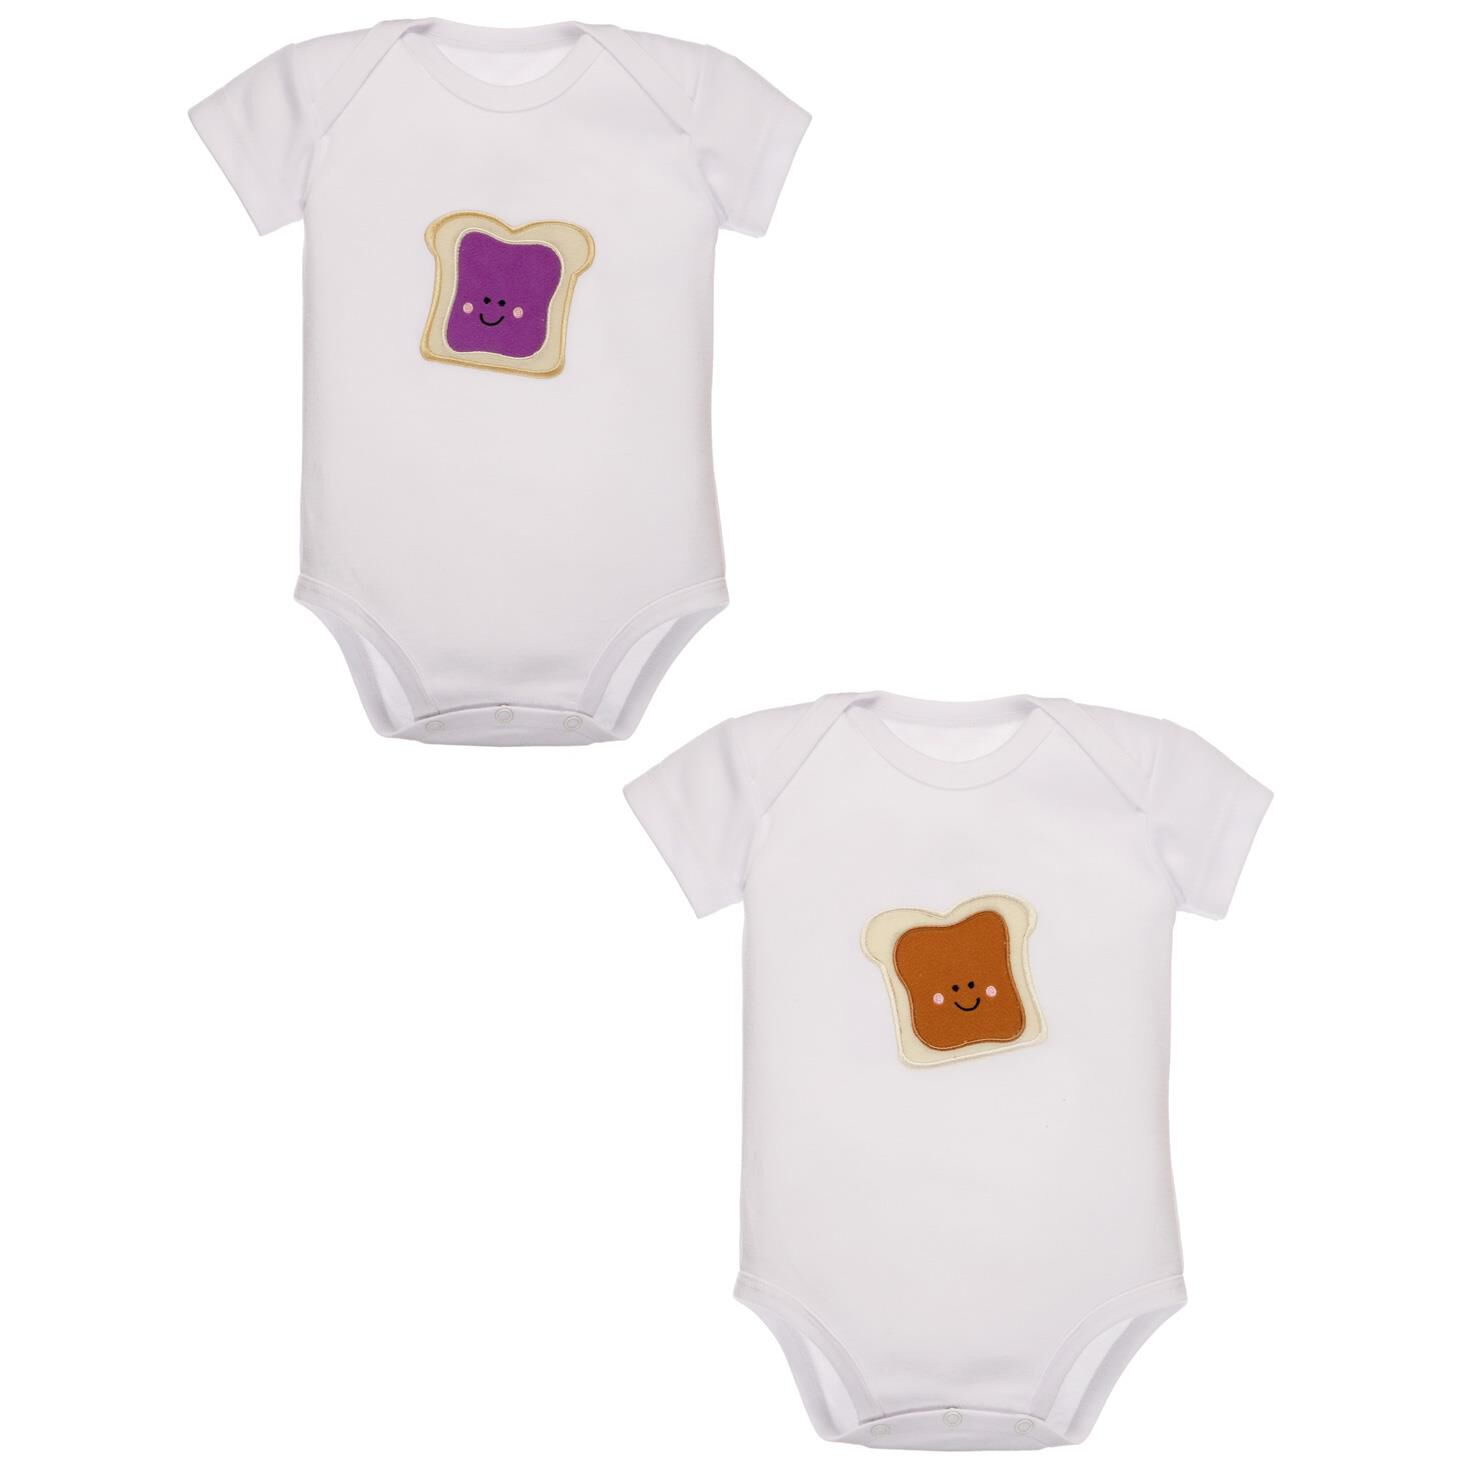 Peanut Butter and Jelly Set of 2 esies 3 6 Months Baby Clothes